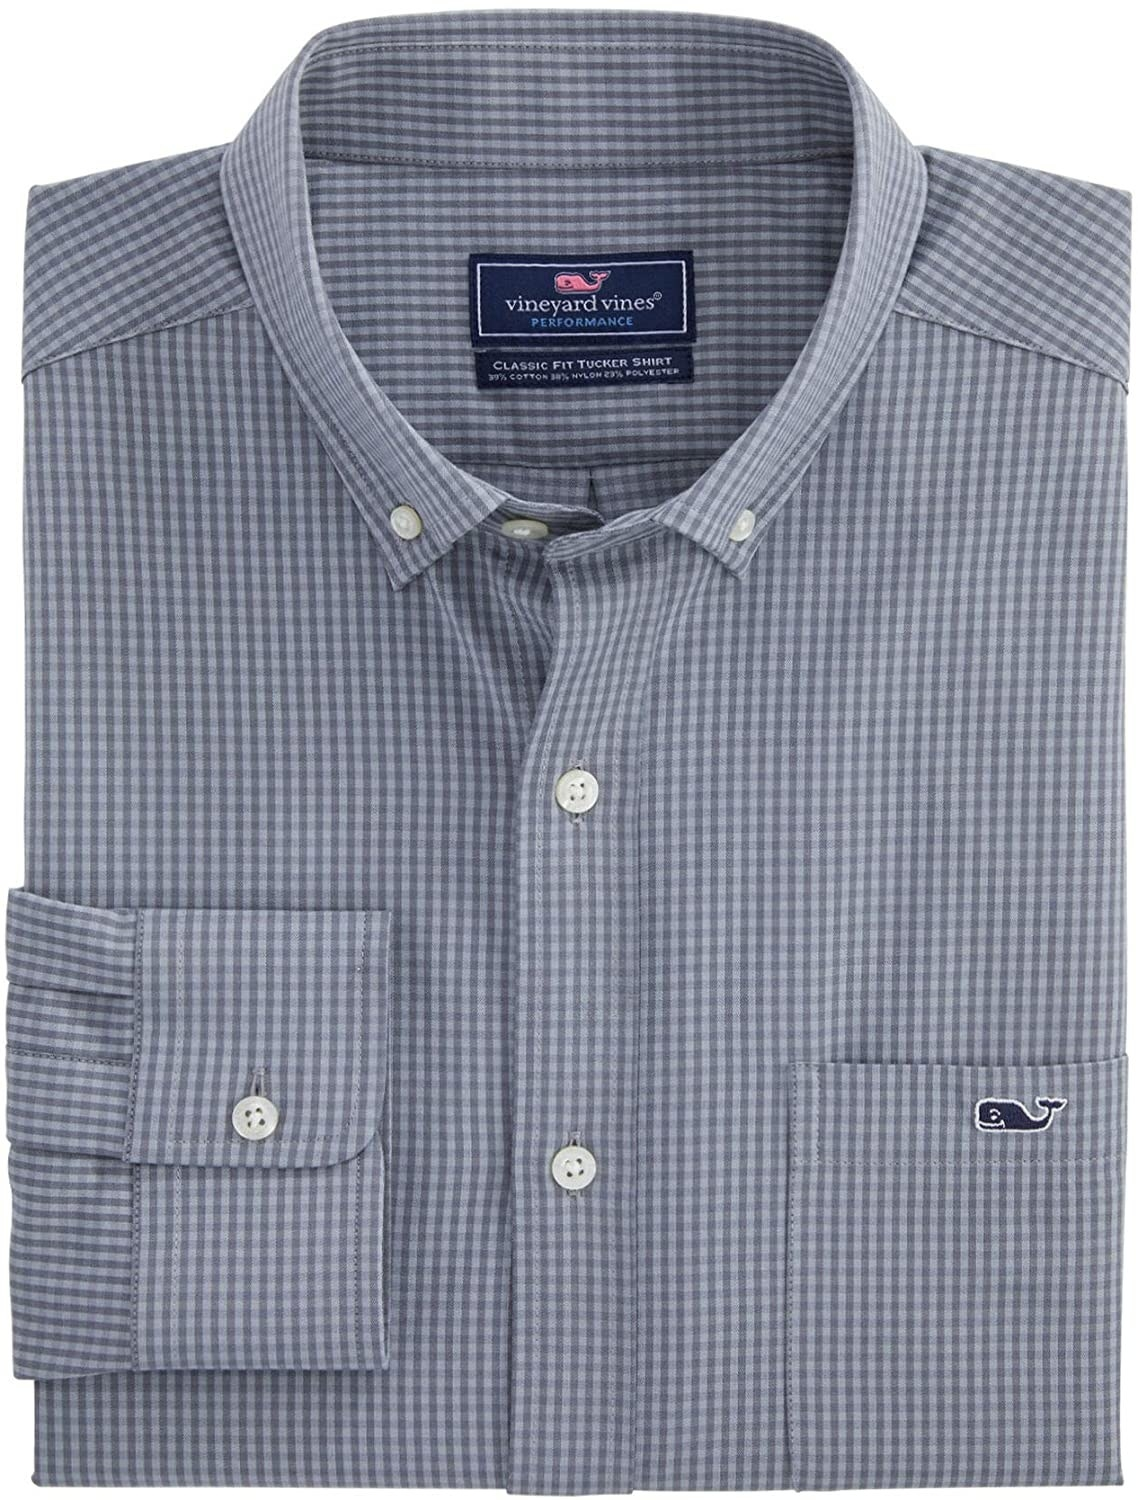 The shirt in grey with collar, white buttons down the front, and a pocket on the left side with a small whale logo on it